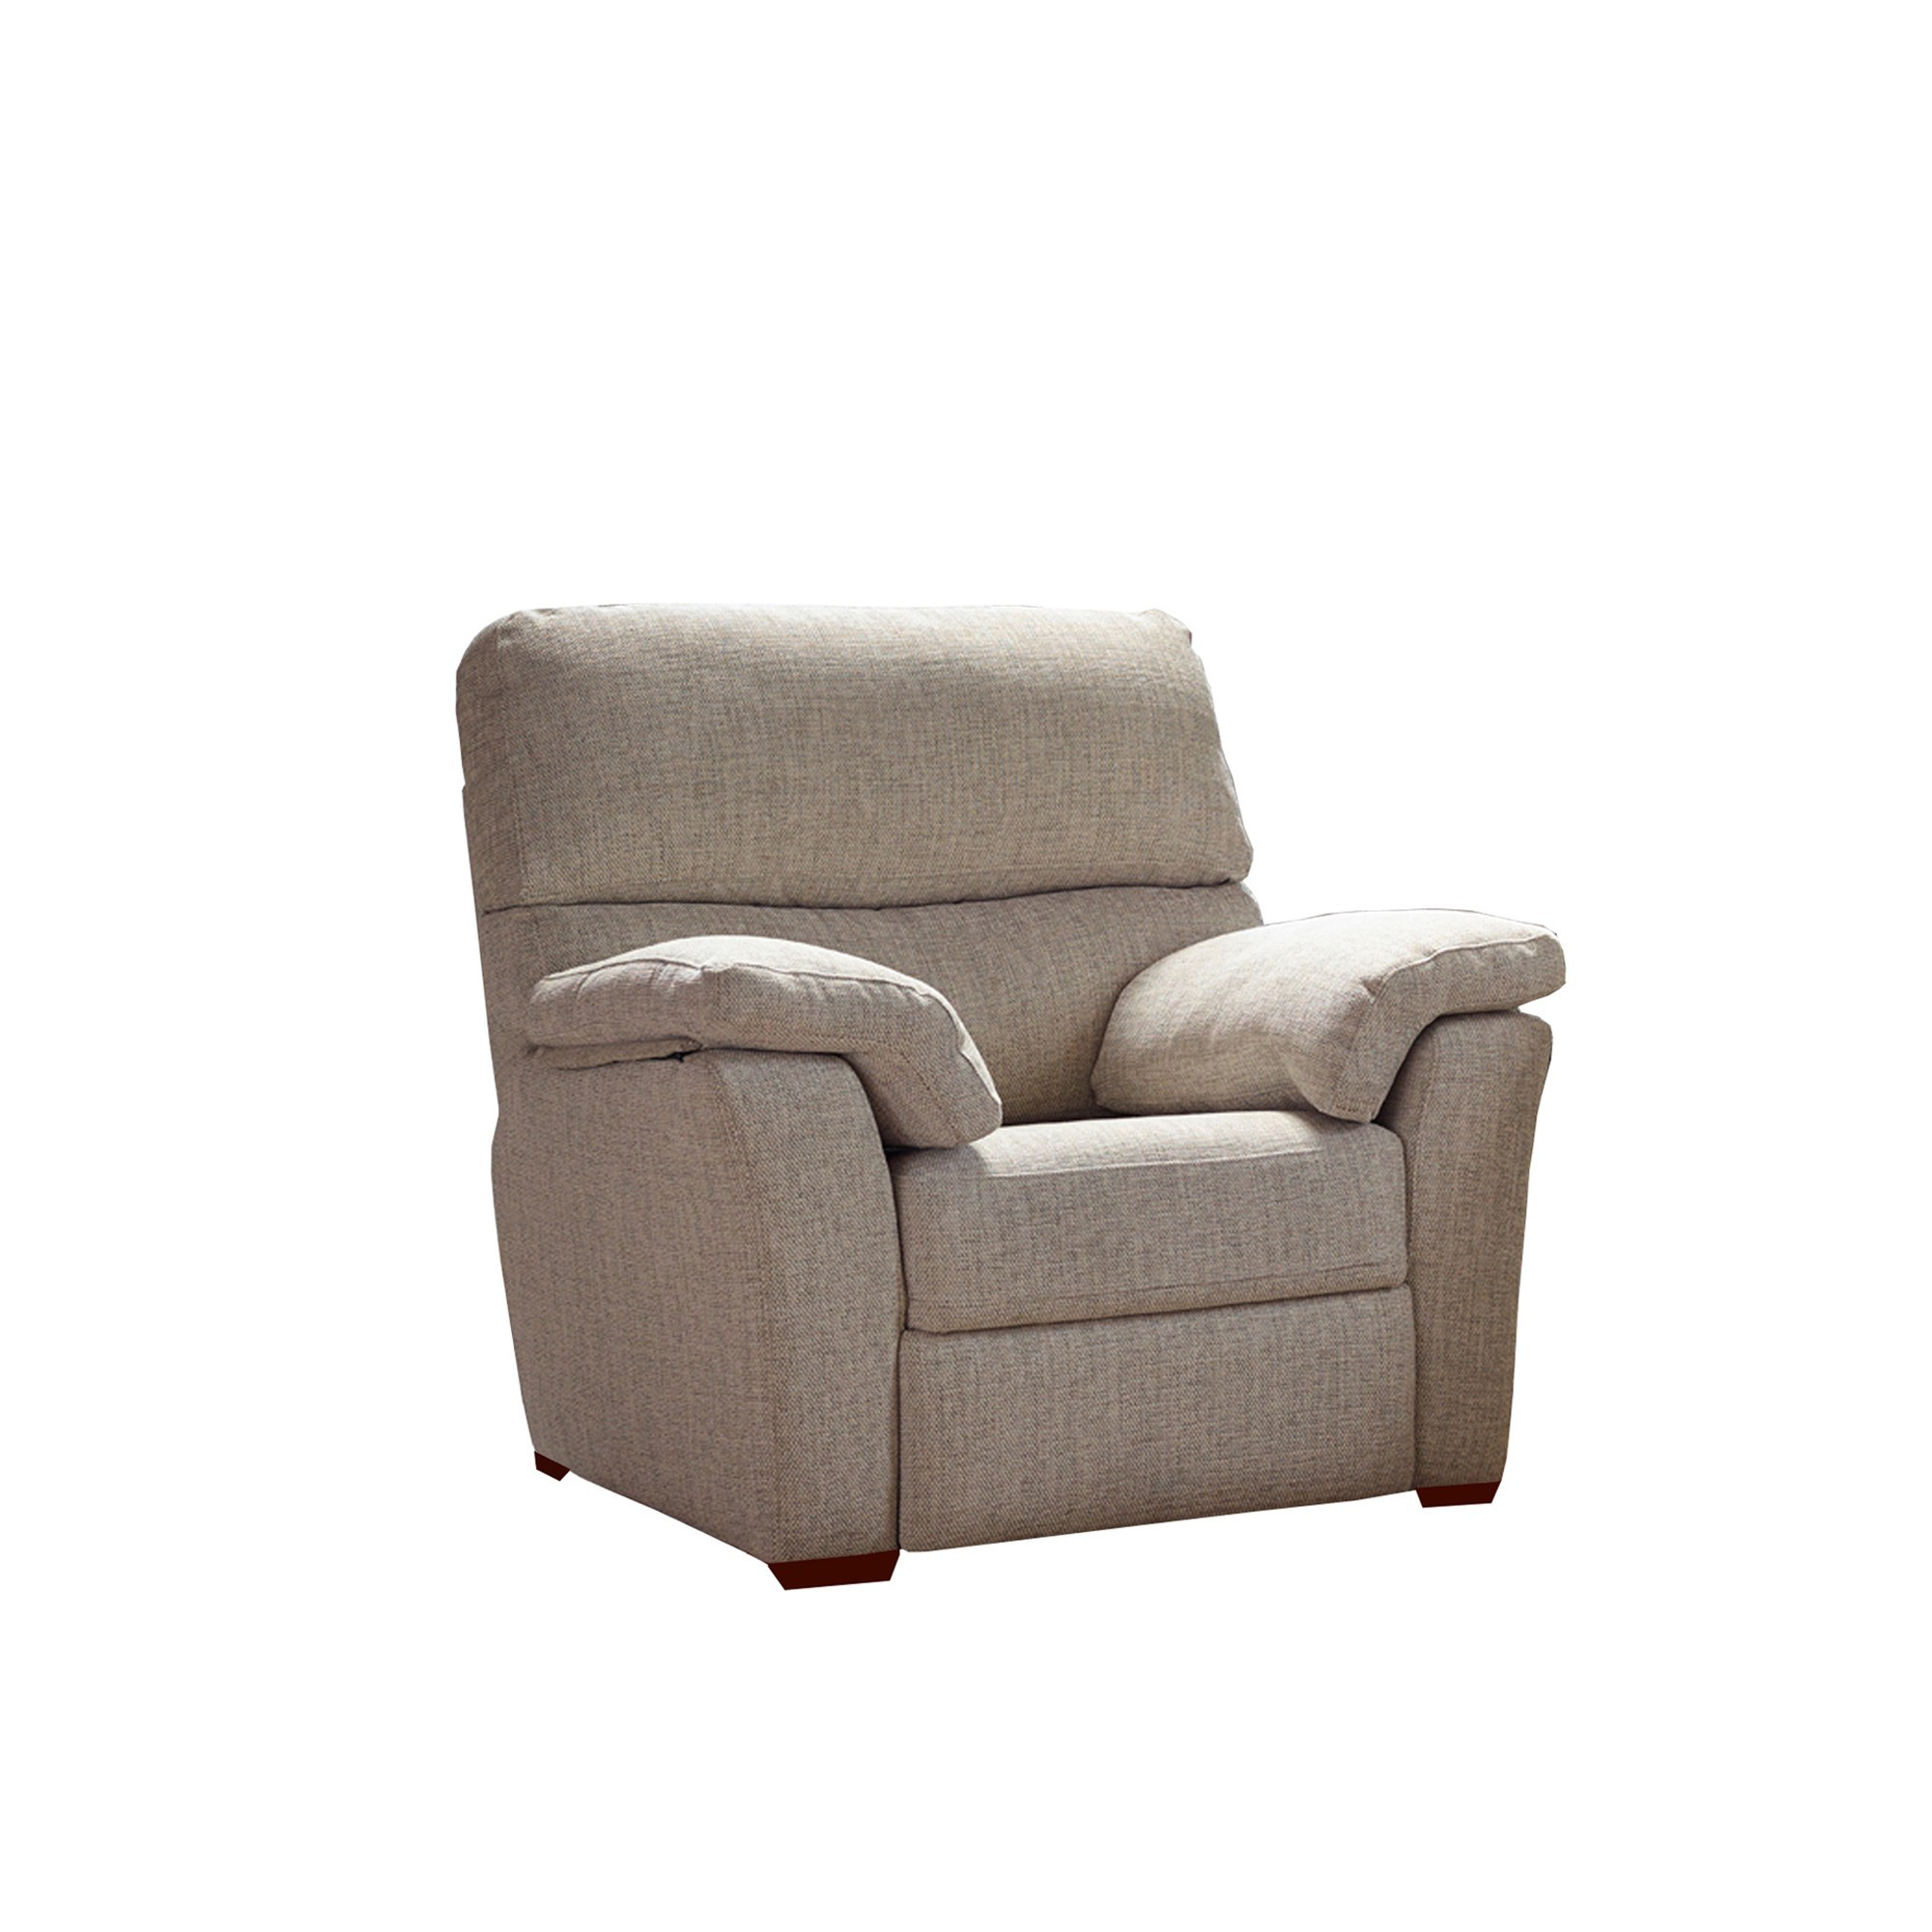 Cookes Collection York Armchair Recliner Chairs Cookes